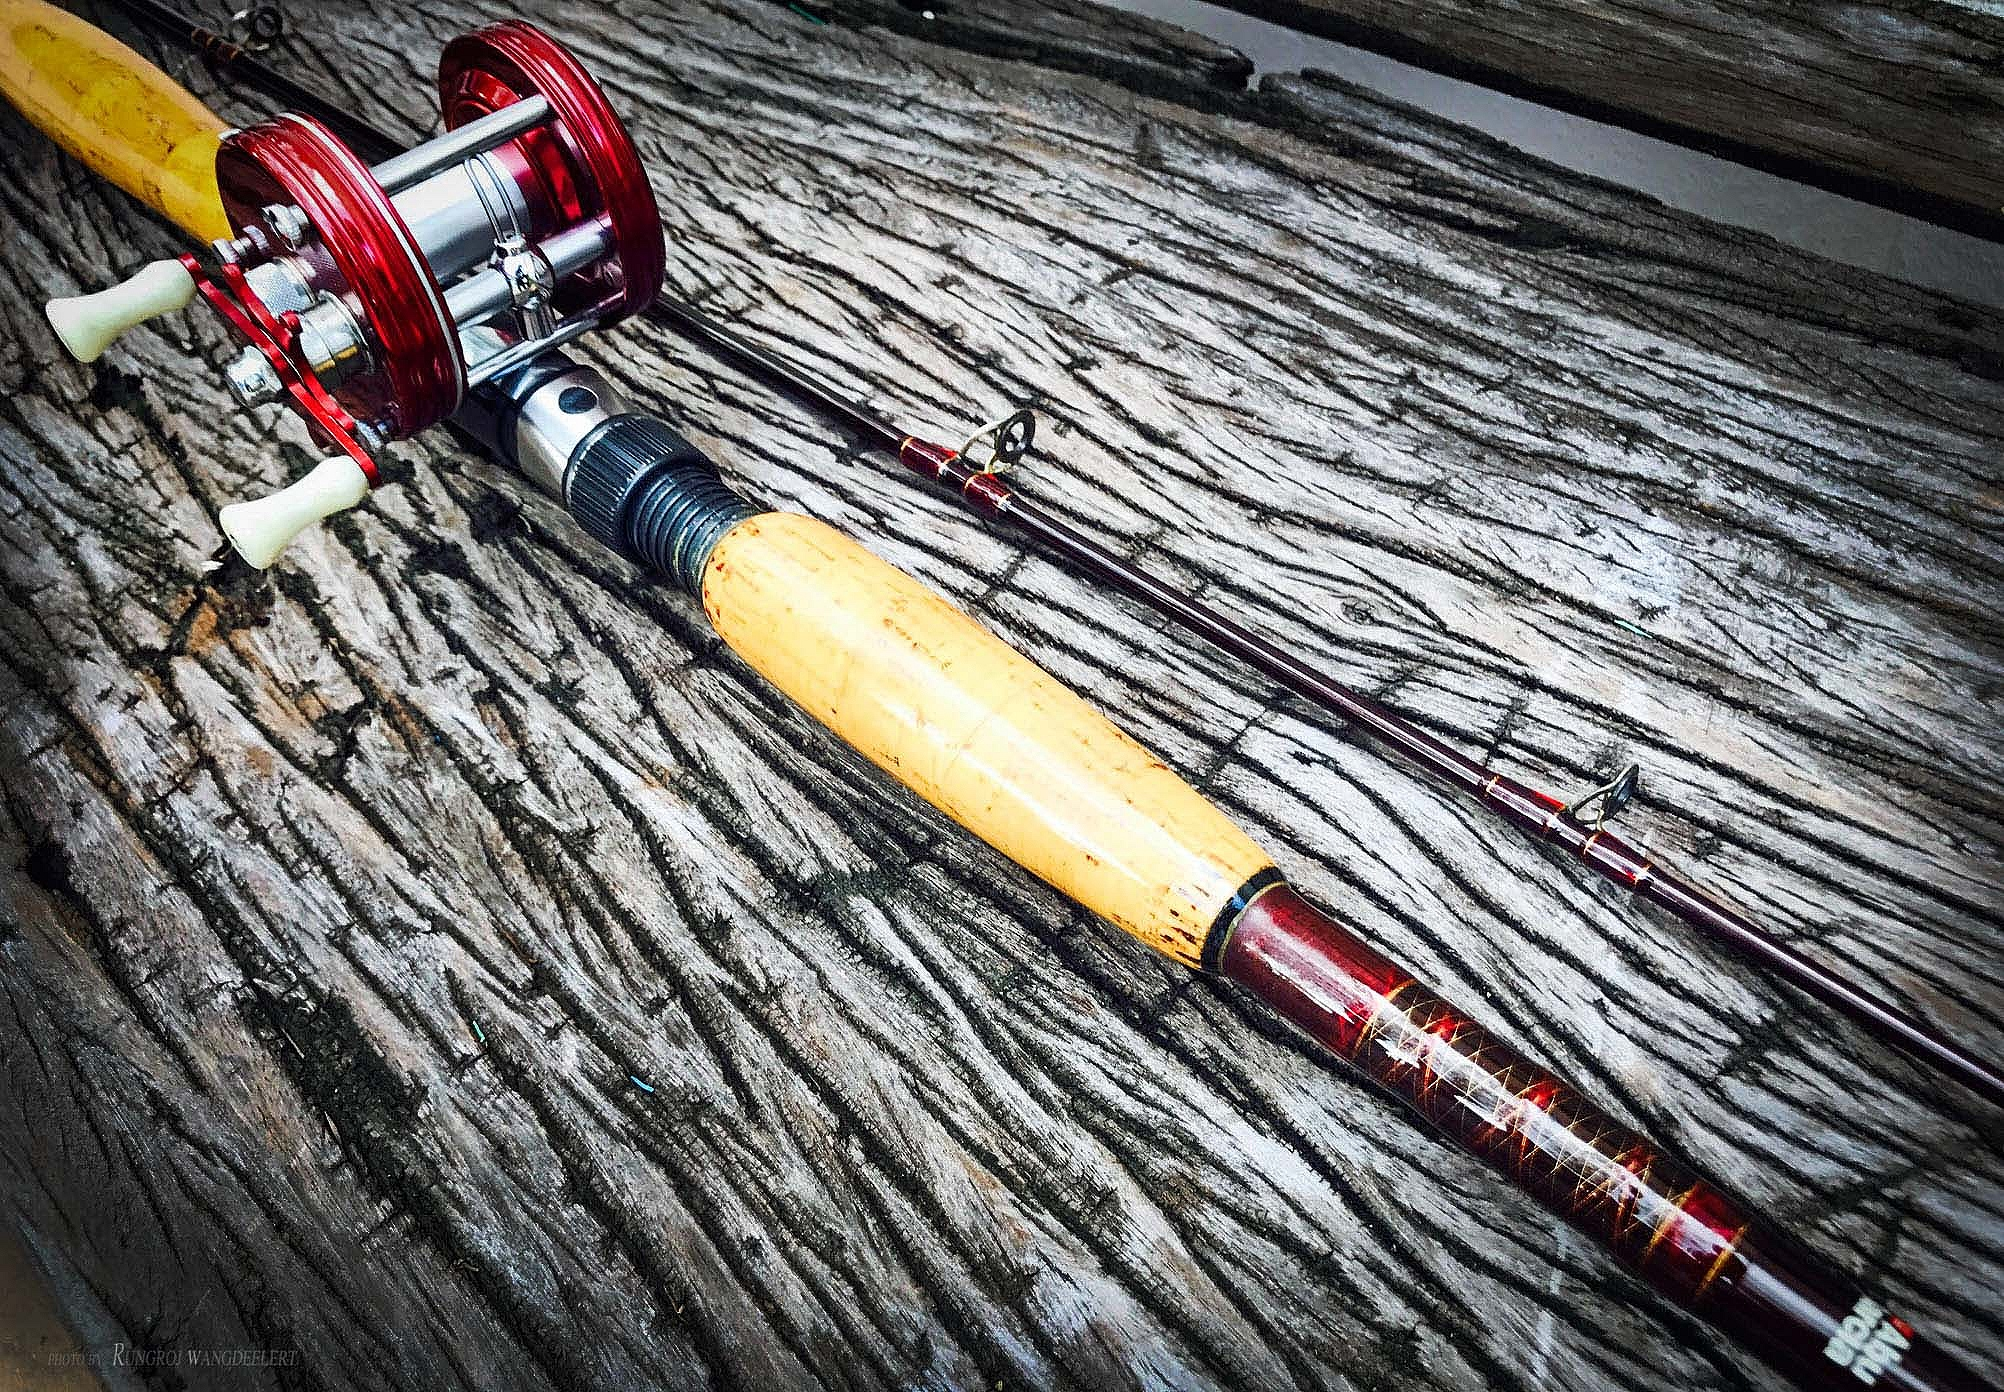 #Abu Ultra Cast Bait 10' First model Gold guide Rod.